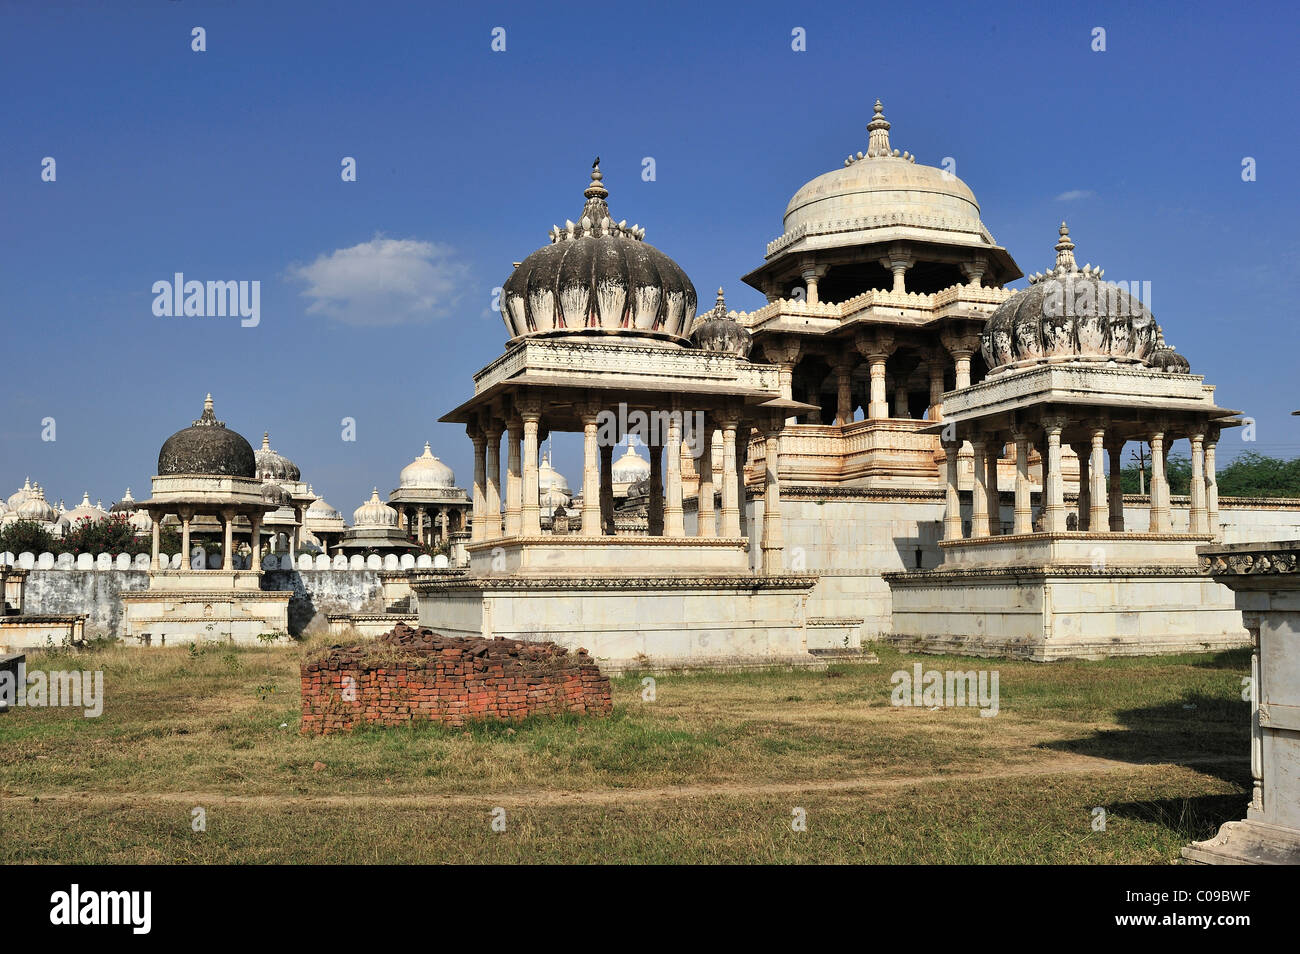 Ahar, cenotaphs, tombs, of the royal Mewar family, Udaipur, Rajasthan, India, Asia - Stock Image